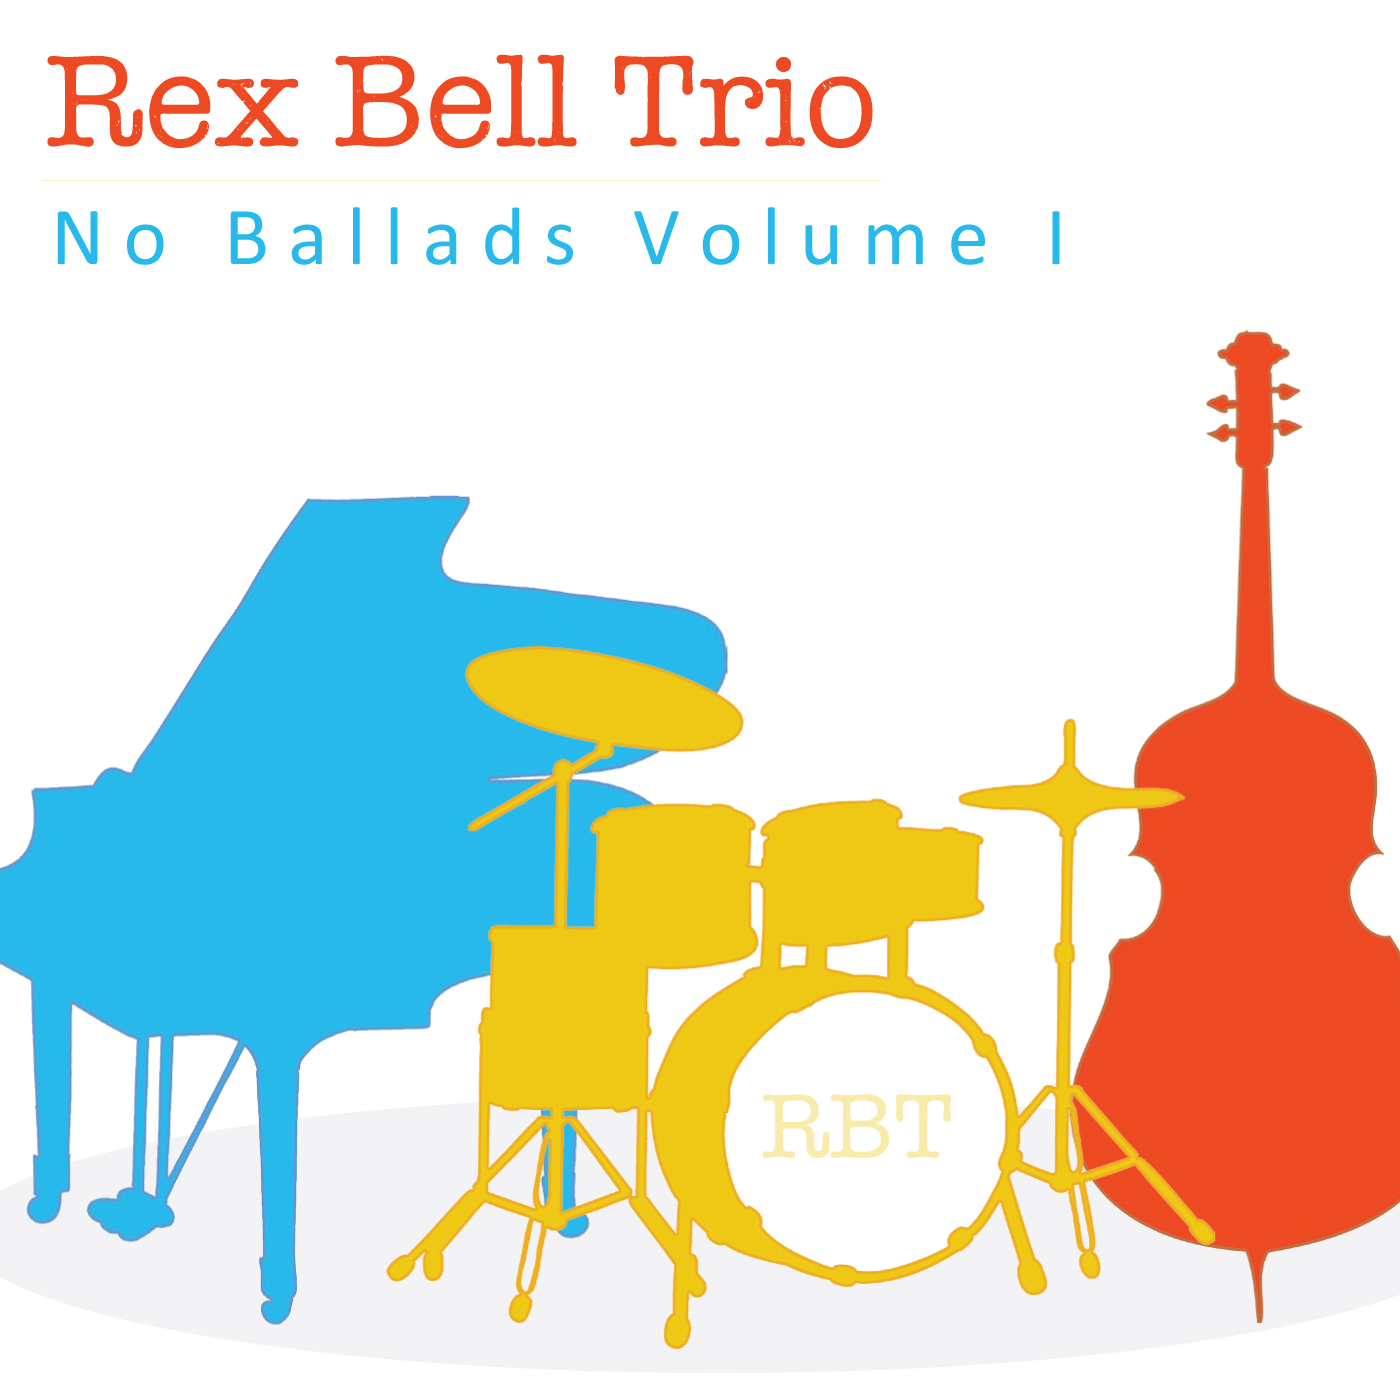 Rex_Bell_Trio_No_Ballads_Volume_I_Cover_CD_Baby